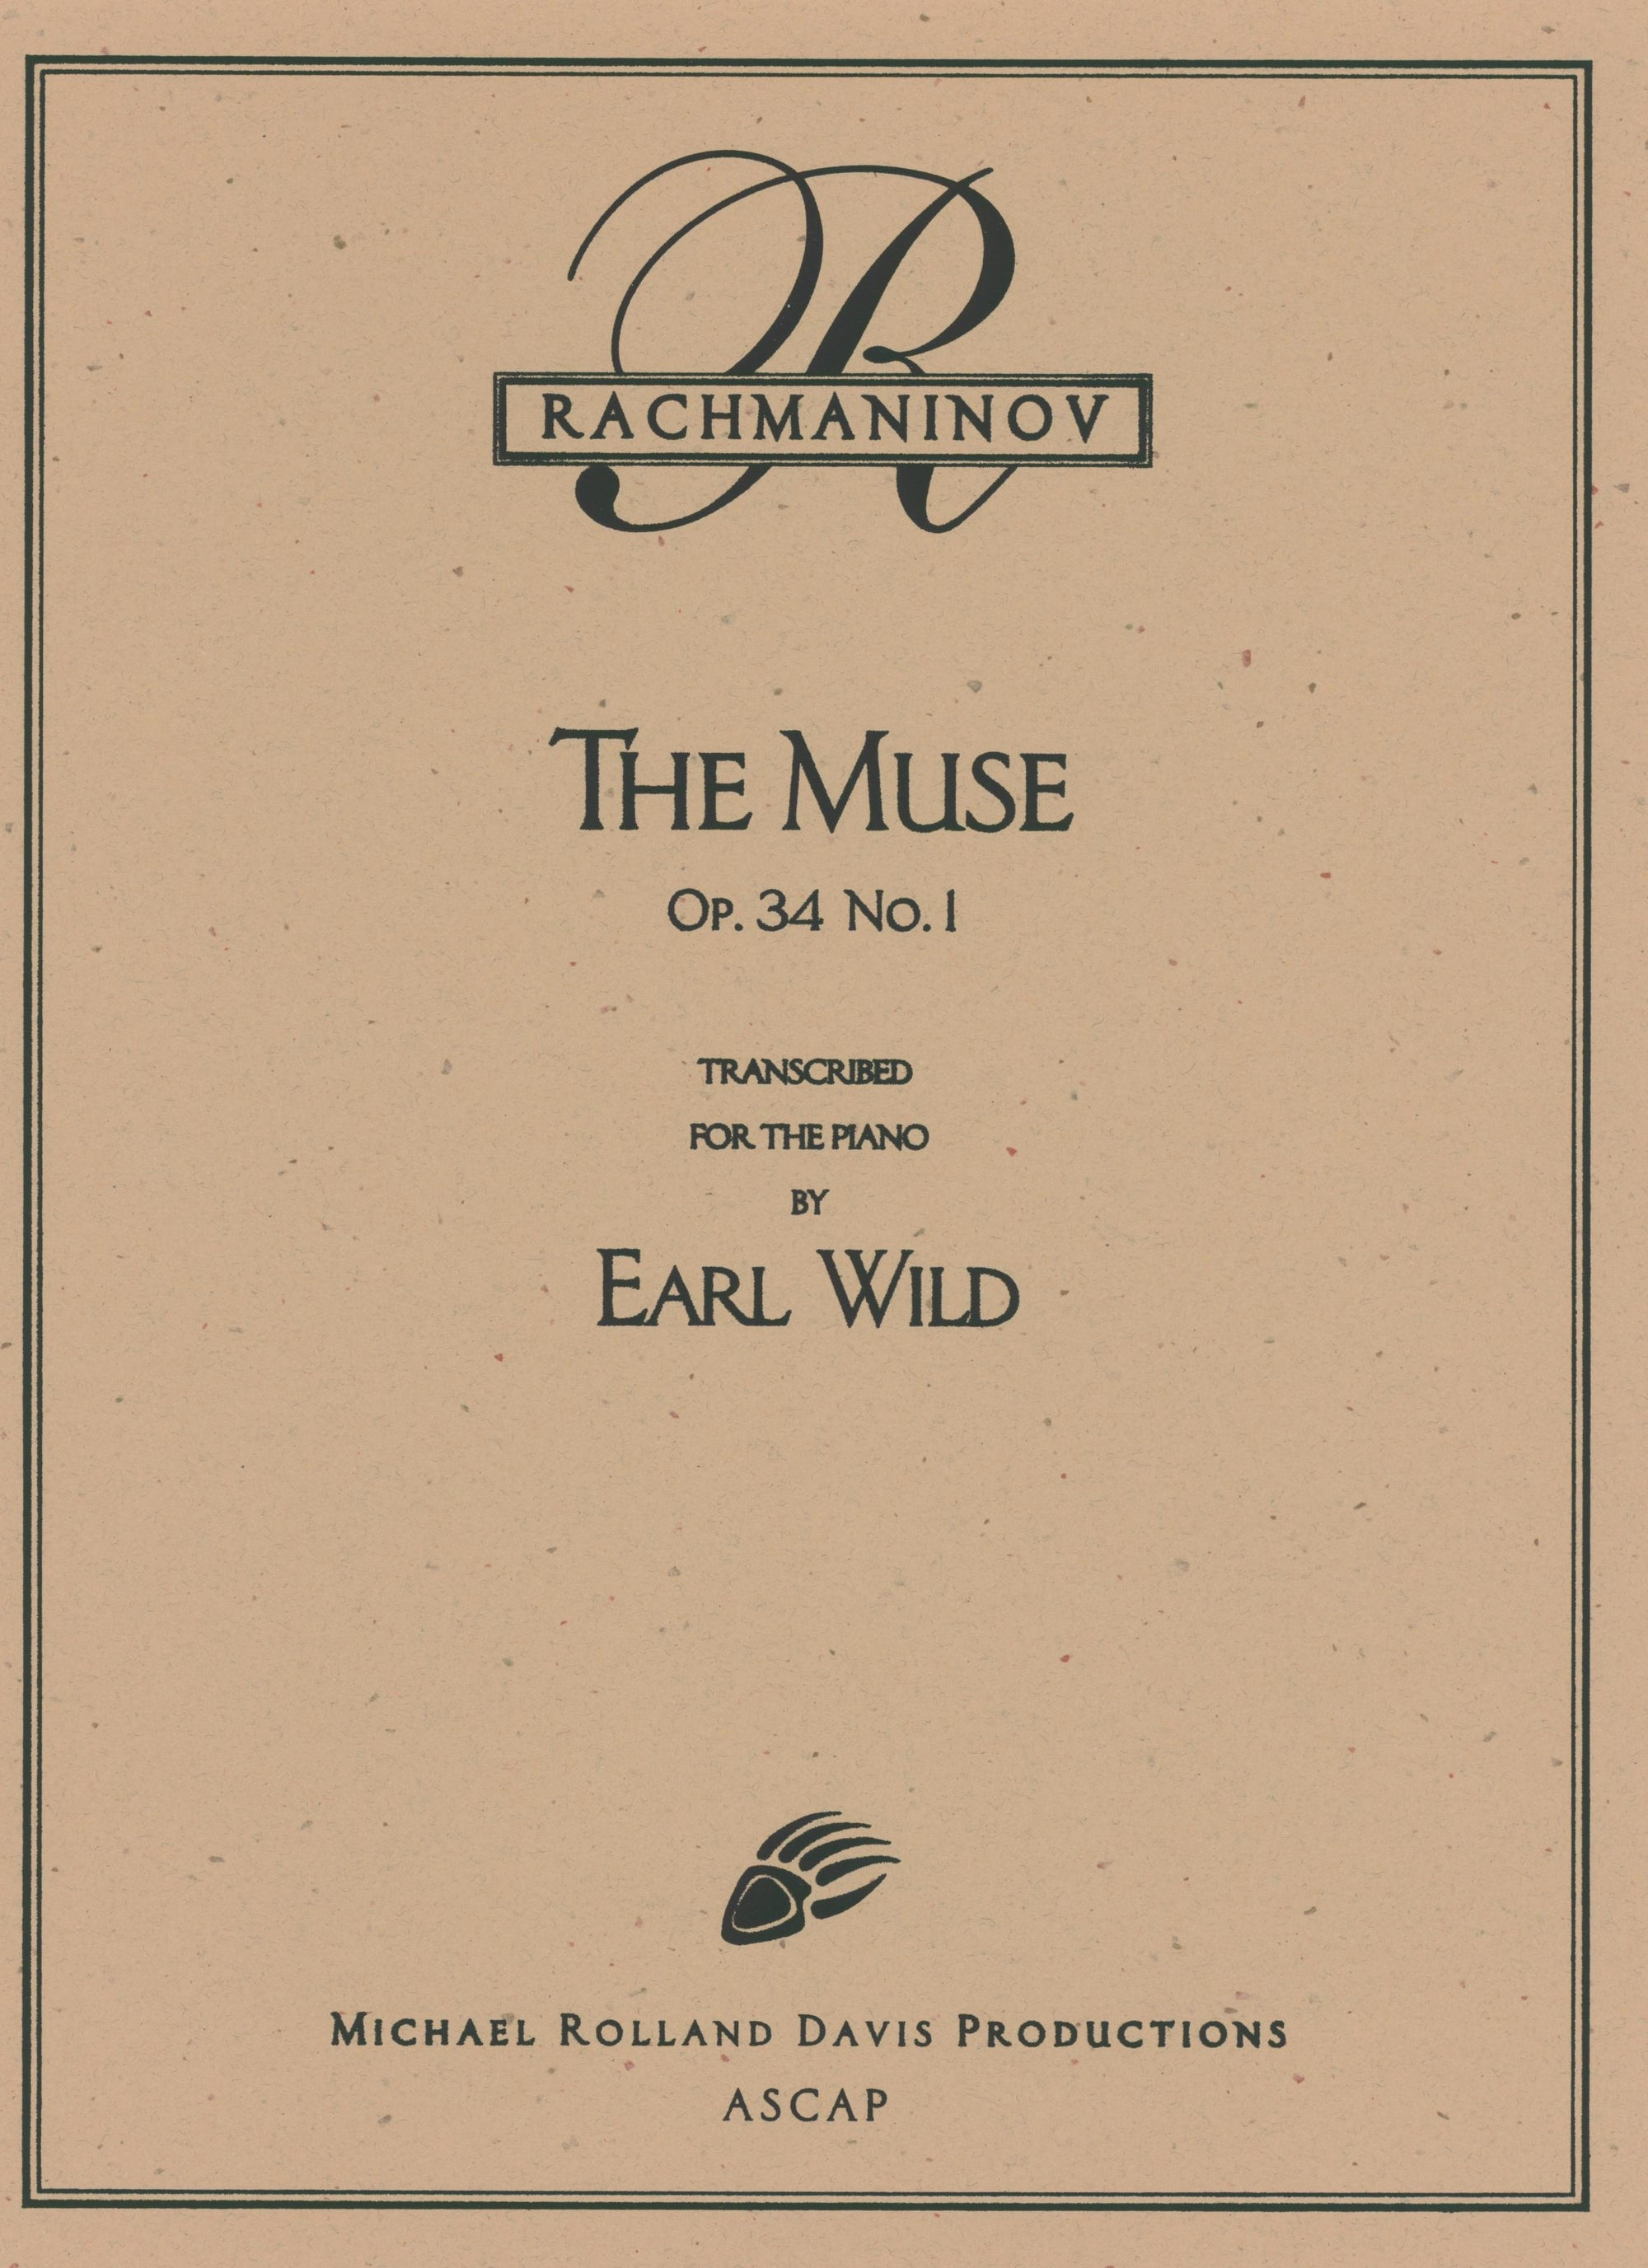 Rachmaninoff-Wild: The Muse, Op. 34, No. 1